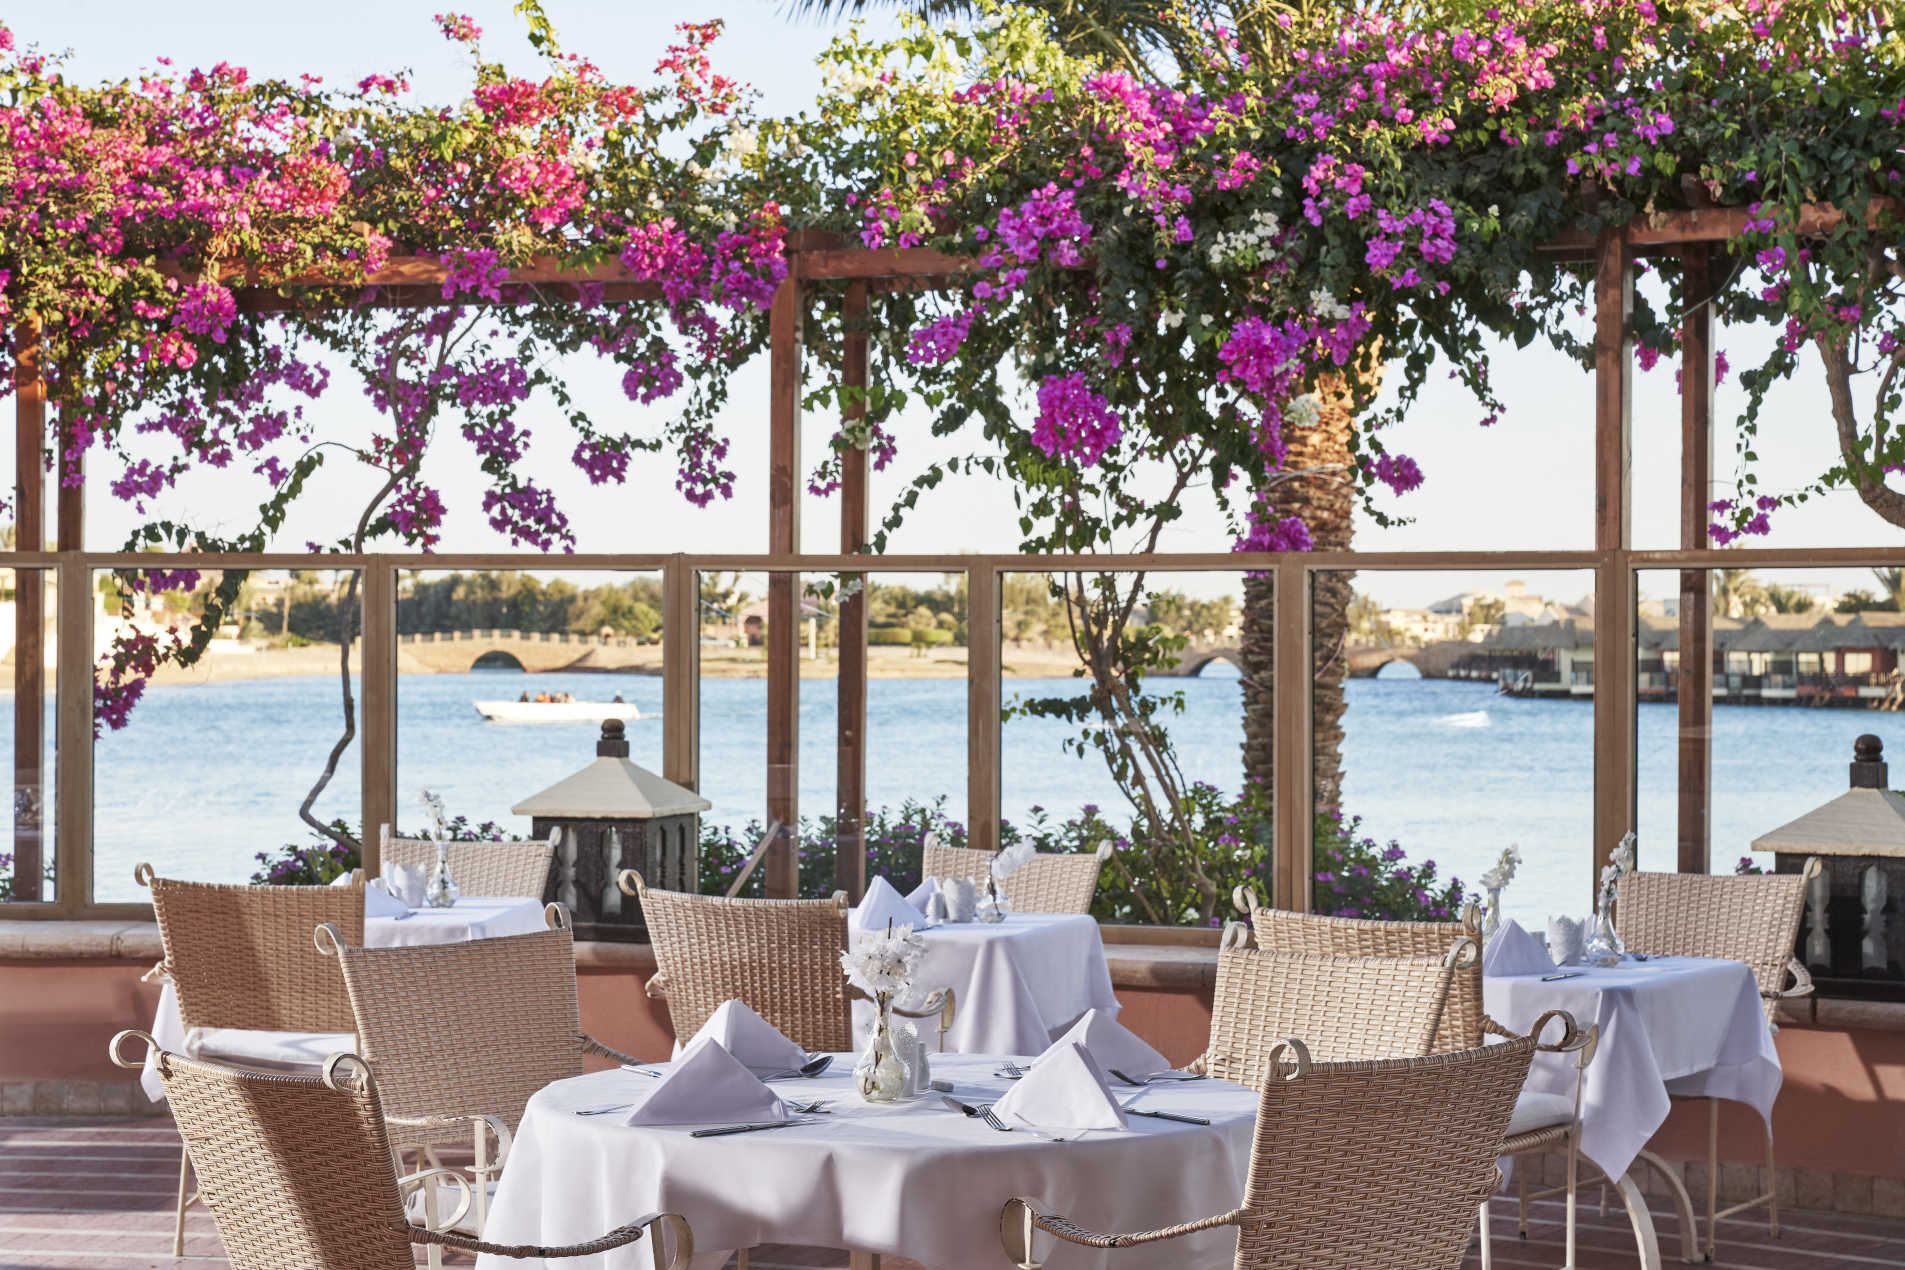 sultan bey hotel el gouna main restaurant at daylight with a view of the lagoon